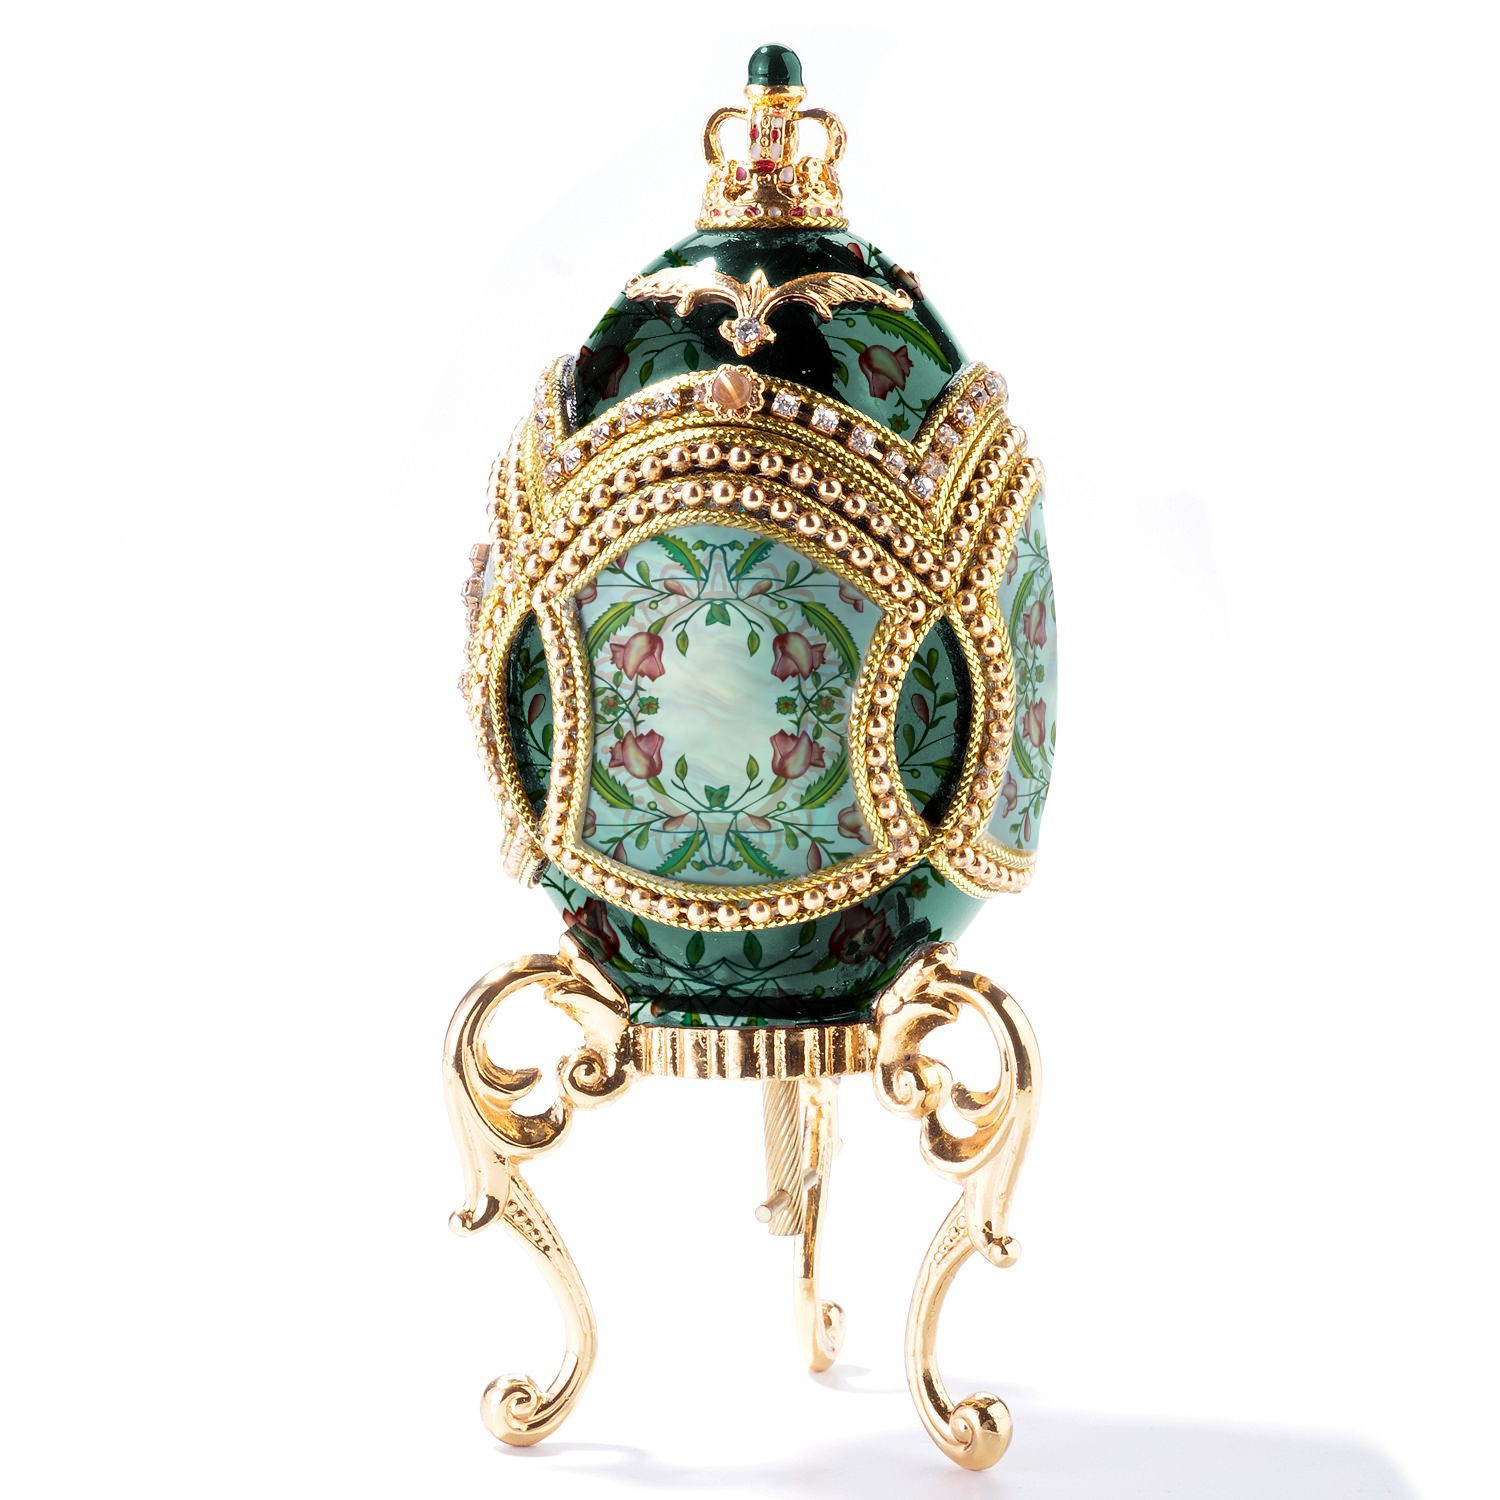 Most Expensive Decorative Objects In The World